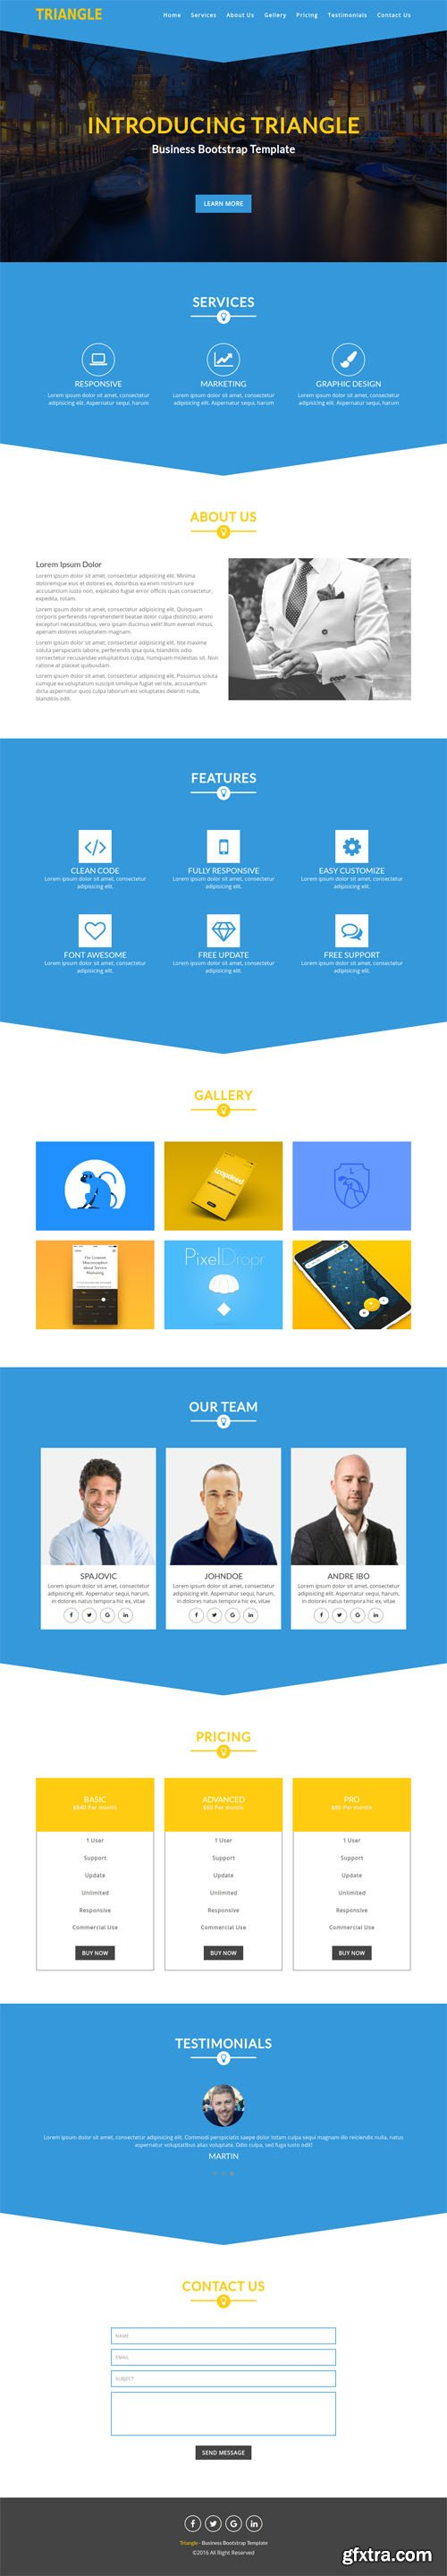 ThemeBak - Triangle - Business Bootstrap Template